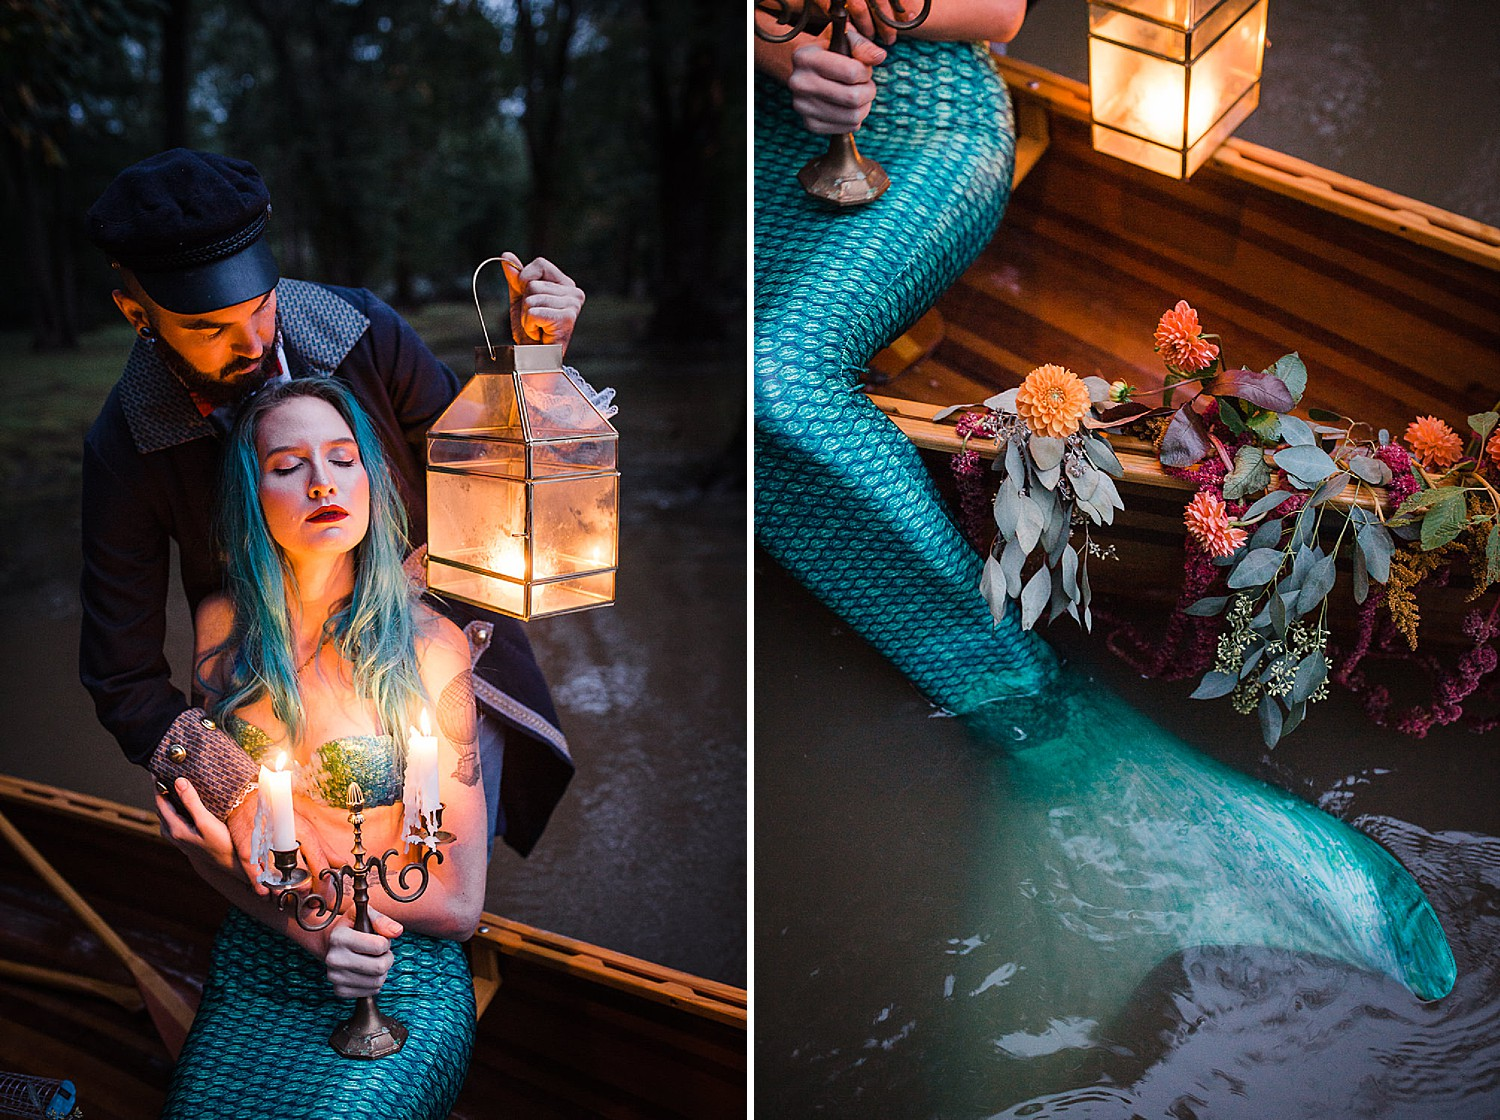 mermaid_fantasy_photography_styled_shoot25.jpg